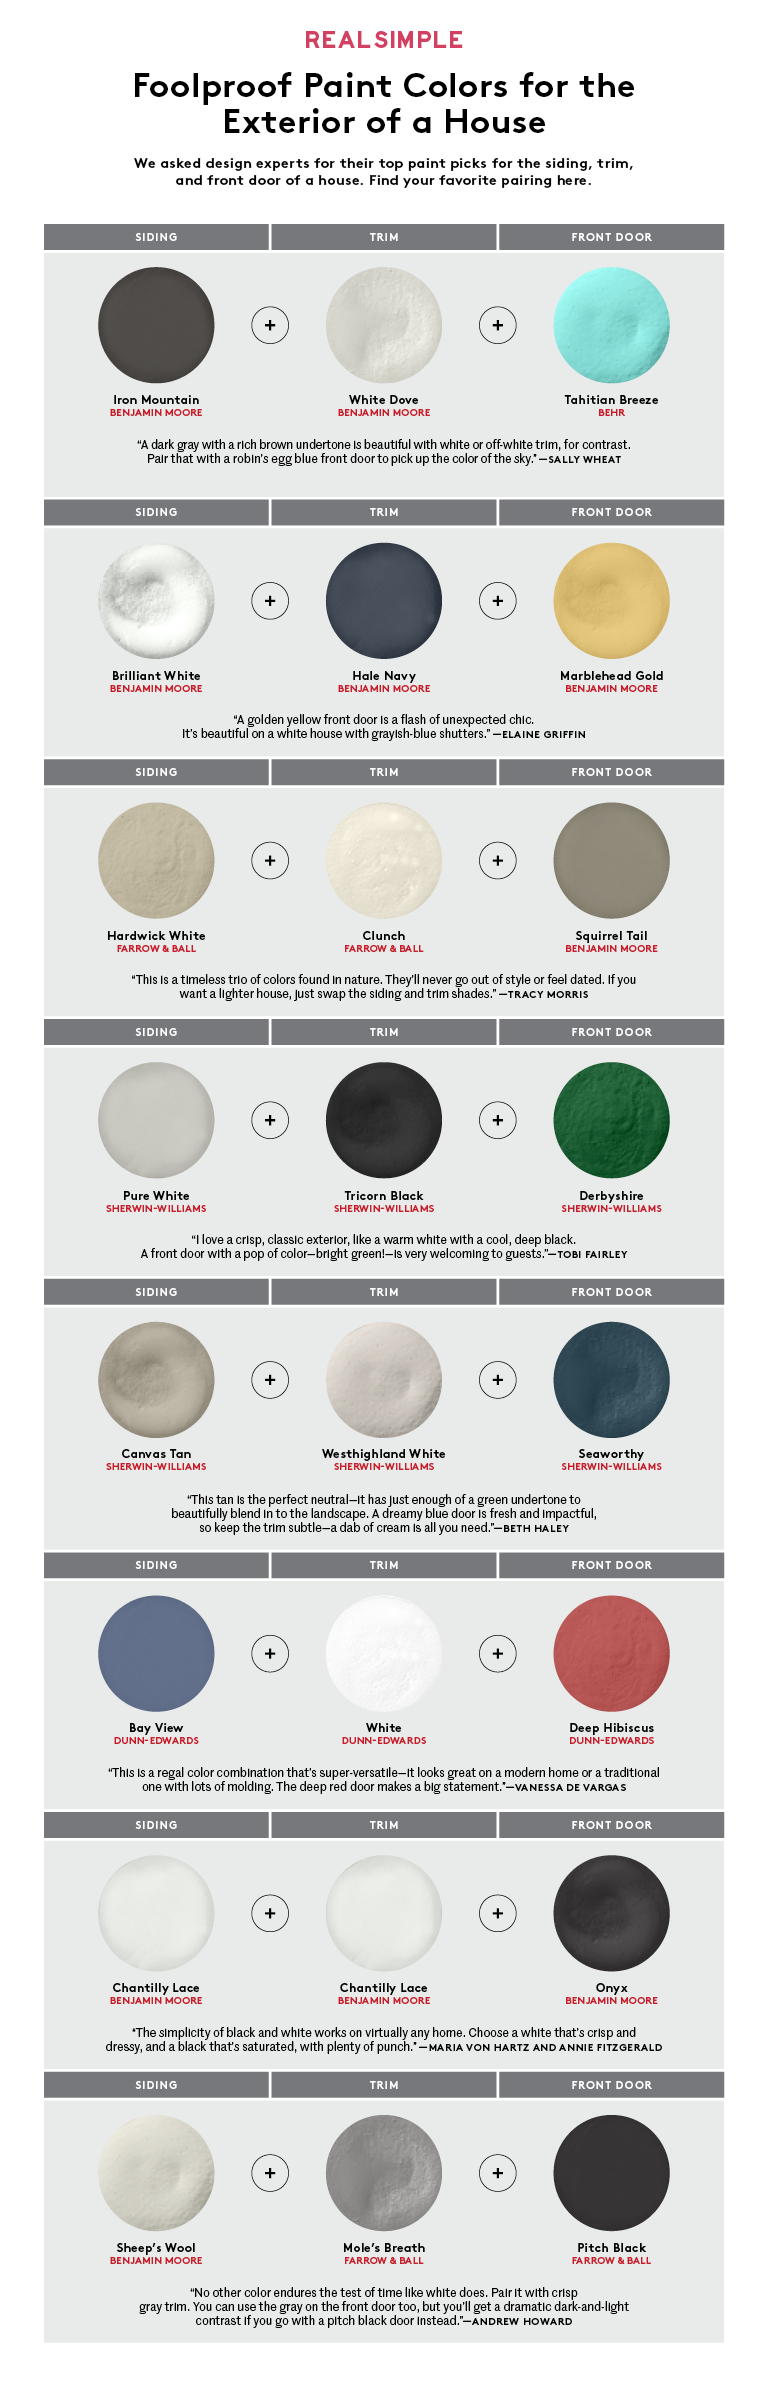 How to Pick the Perfect Paint Colors for Your House Exterior ...